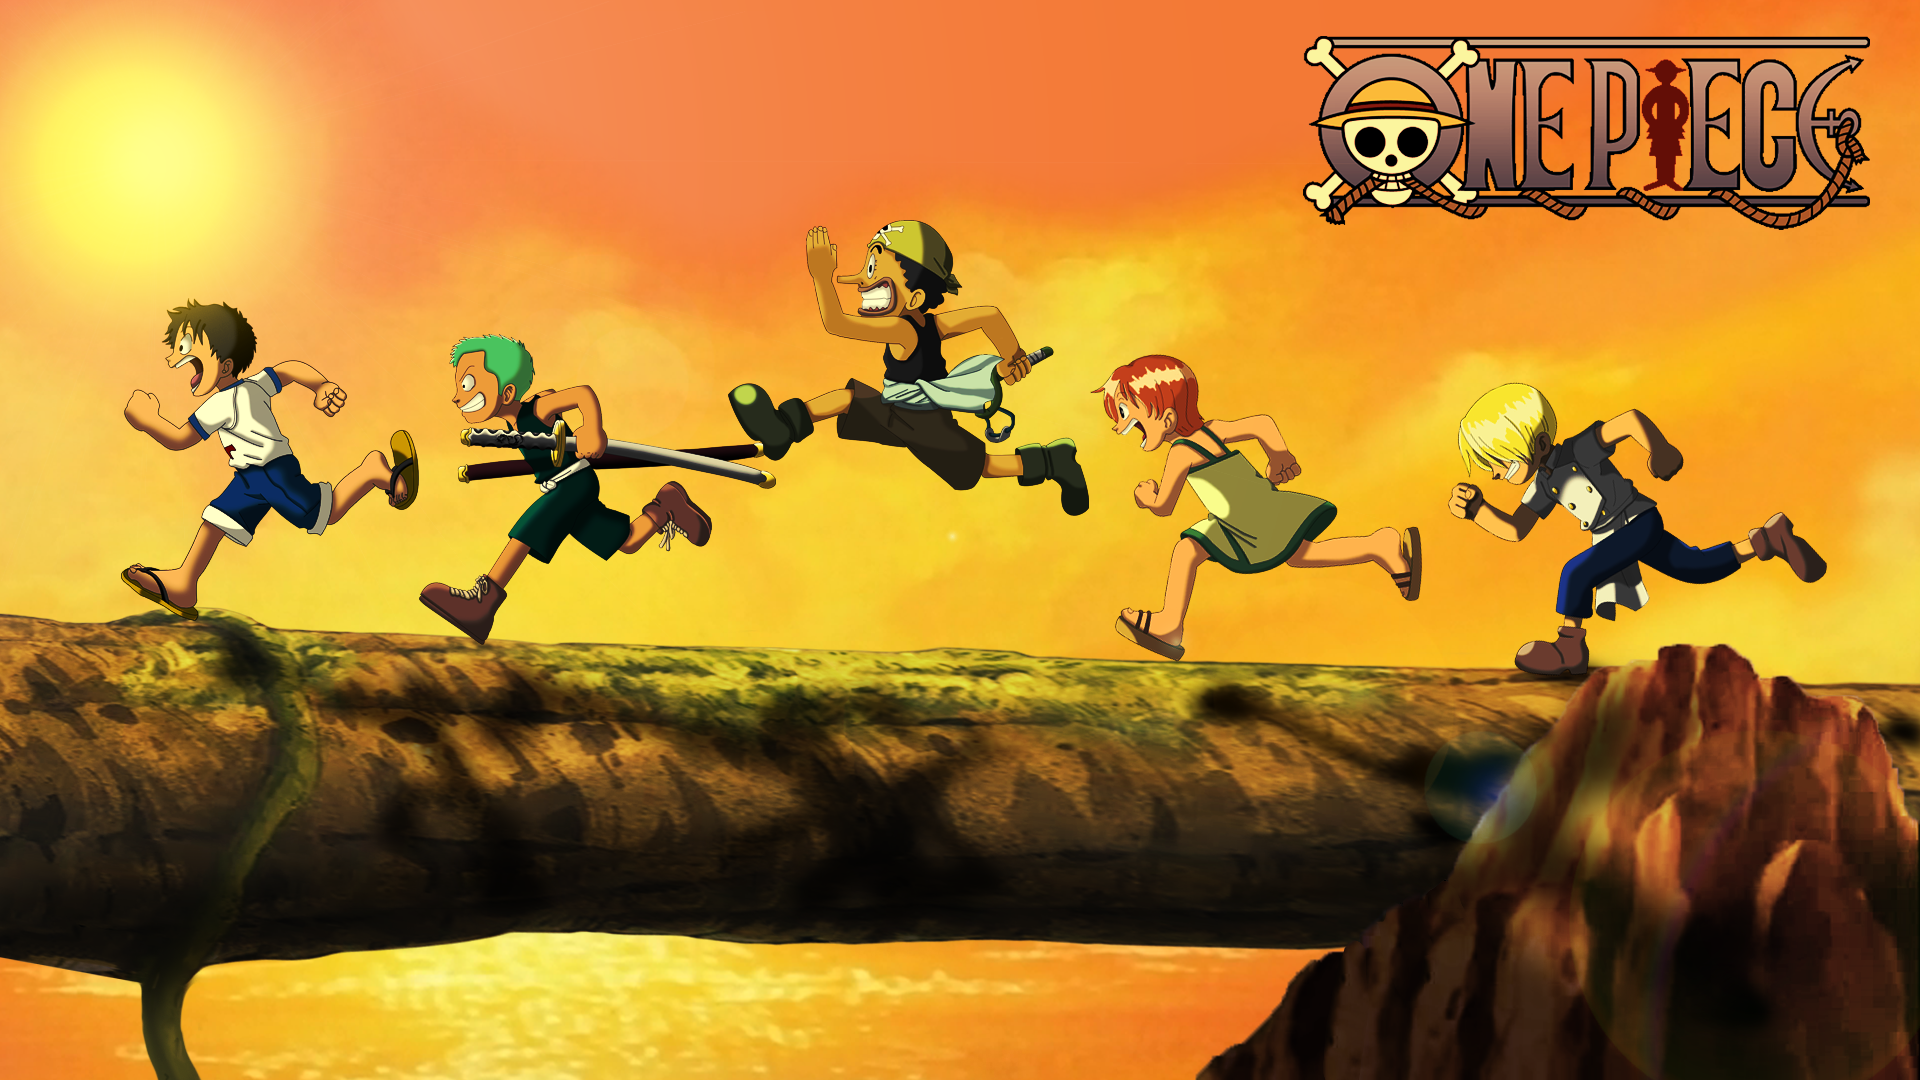 10 incredible one piece wallpapers and 10 amazing one piece wallpapers 1920x1080